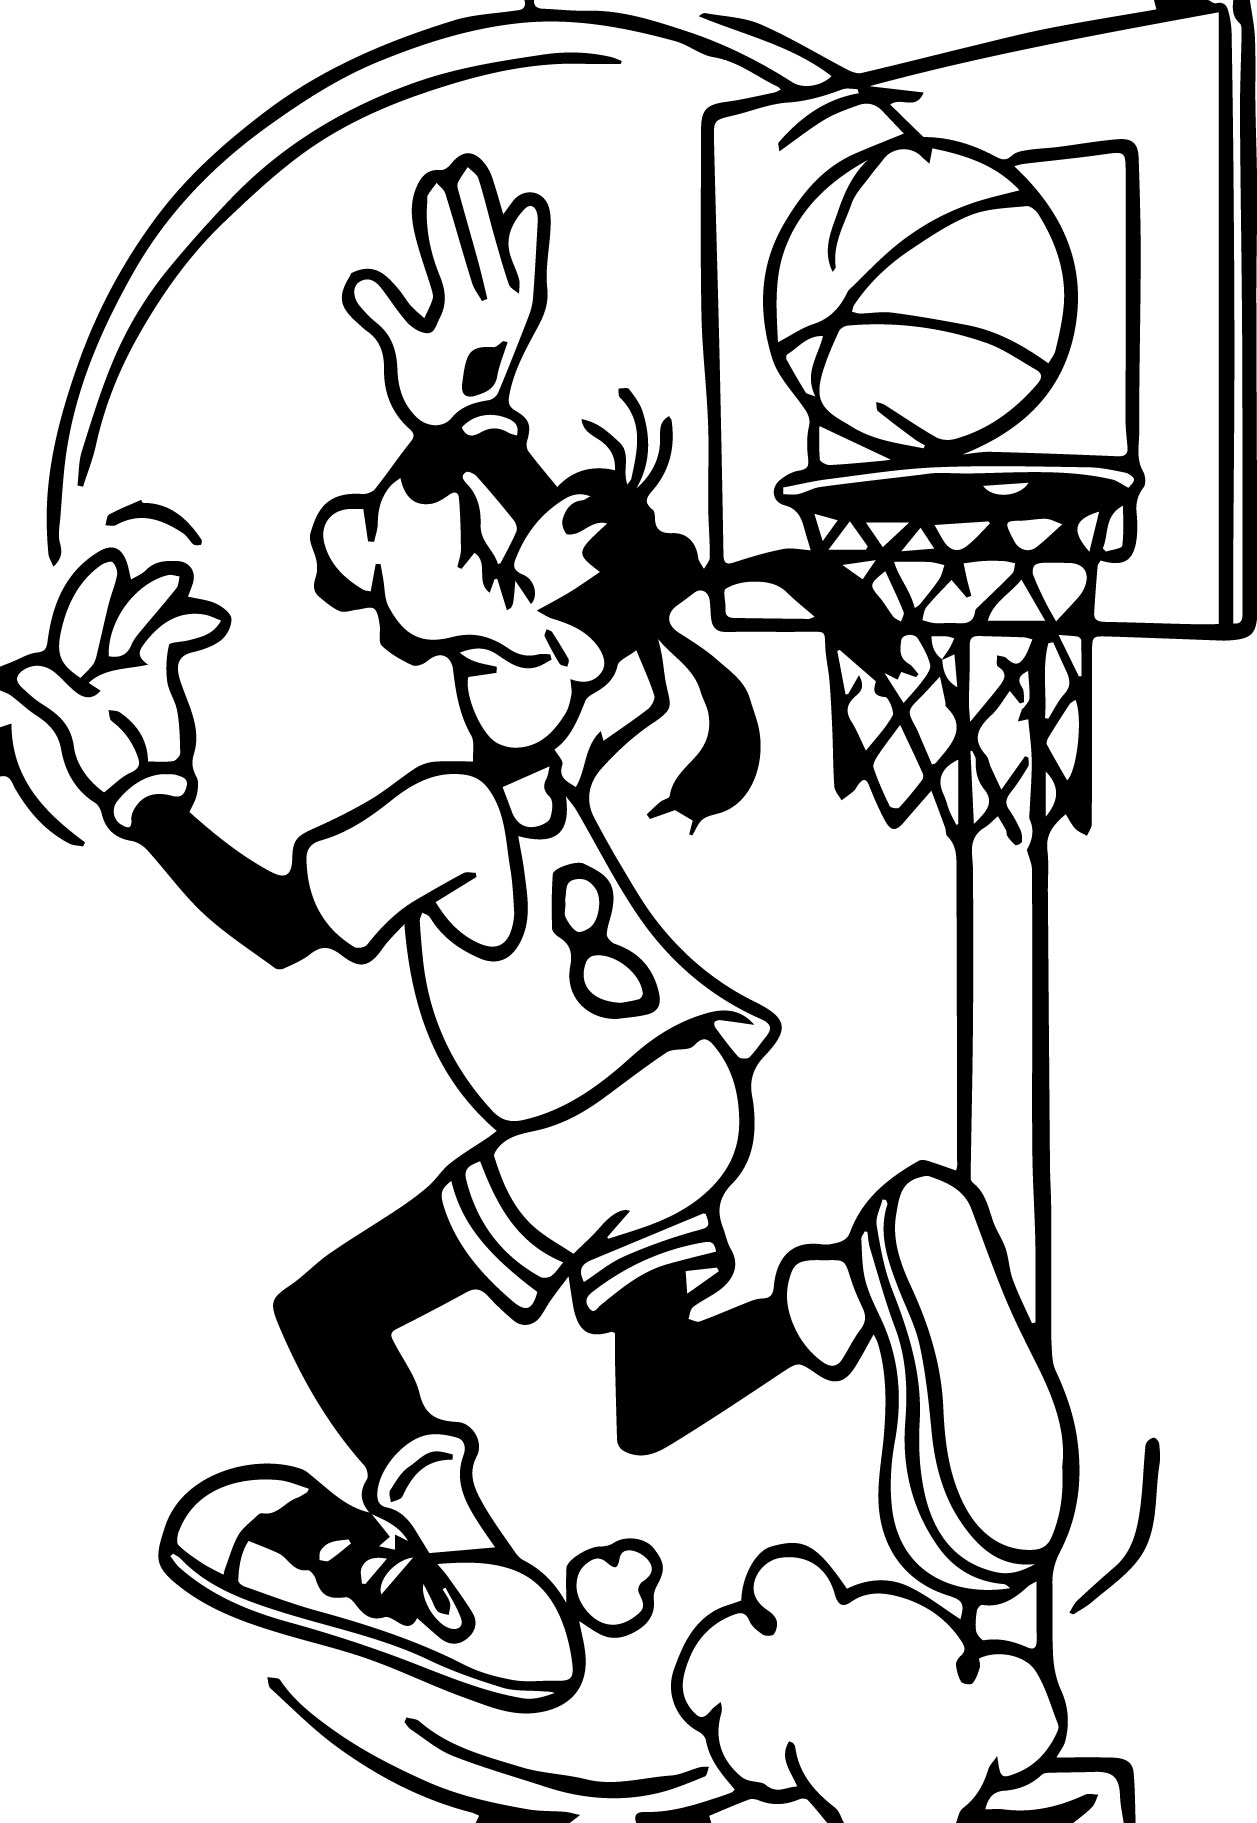 Goofy Playing Basketball Shot Coloring Pages